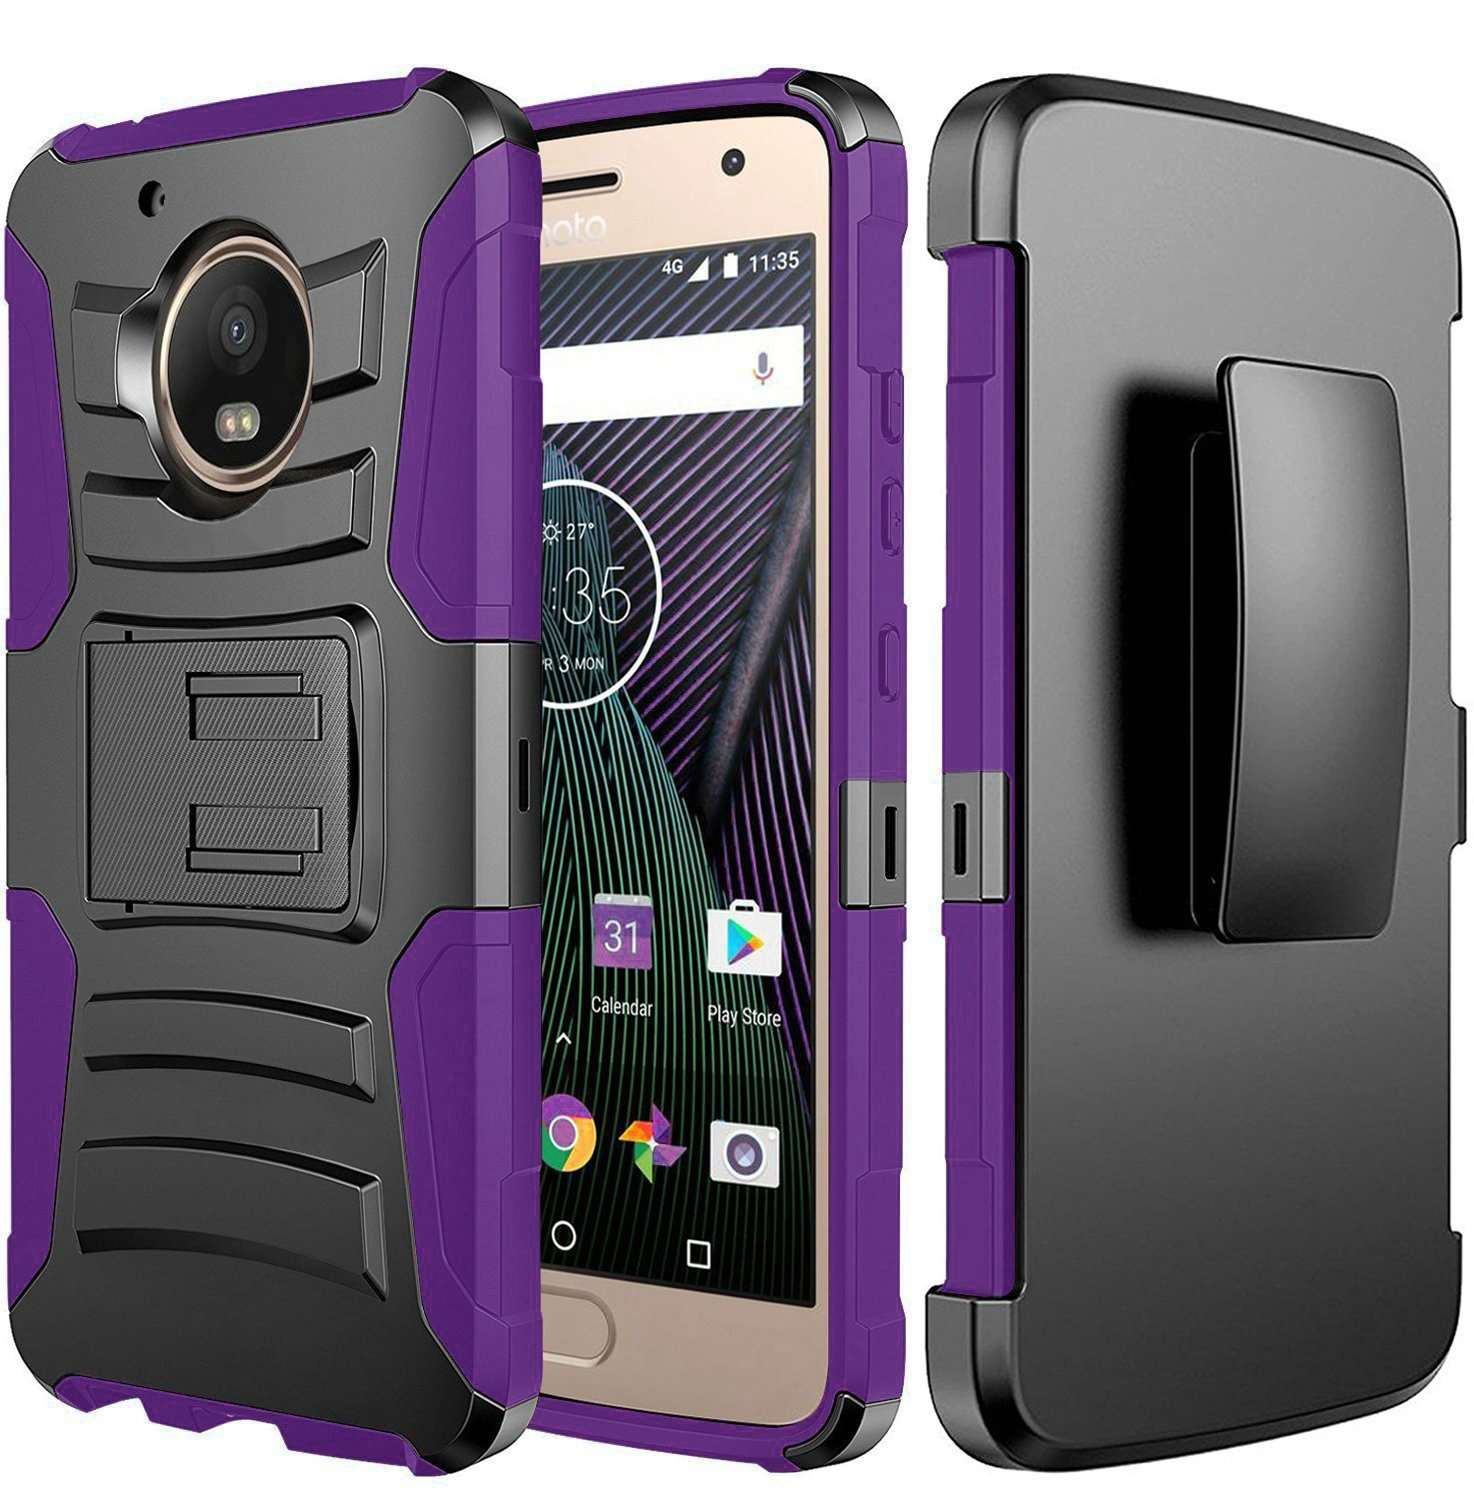 Motorola Moto G5 Plus Case, Dual Layer Hard Case w/ Kickstand on [Purple] Silicone Skin Case w/ Holster with Travel Wallet Phone Stand